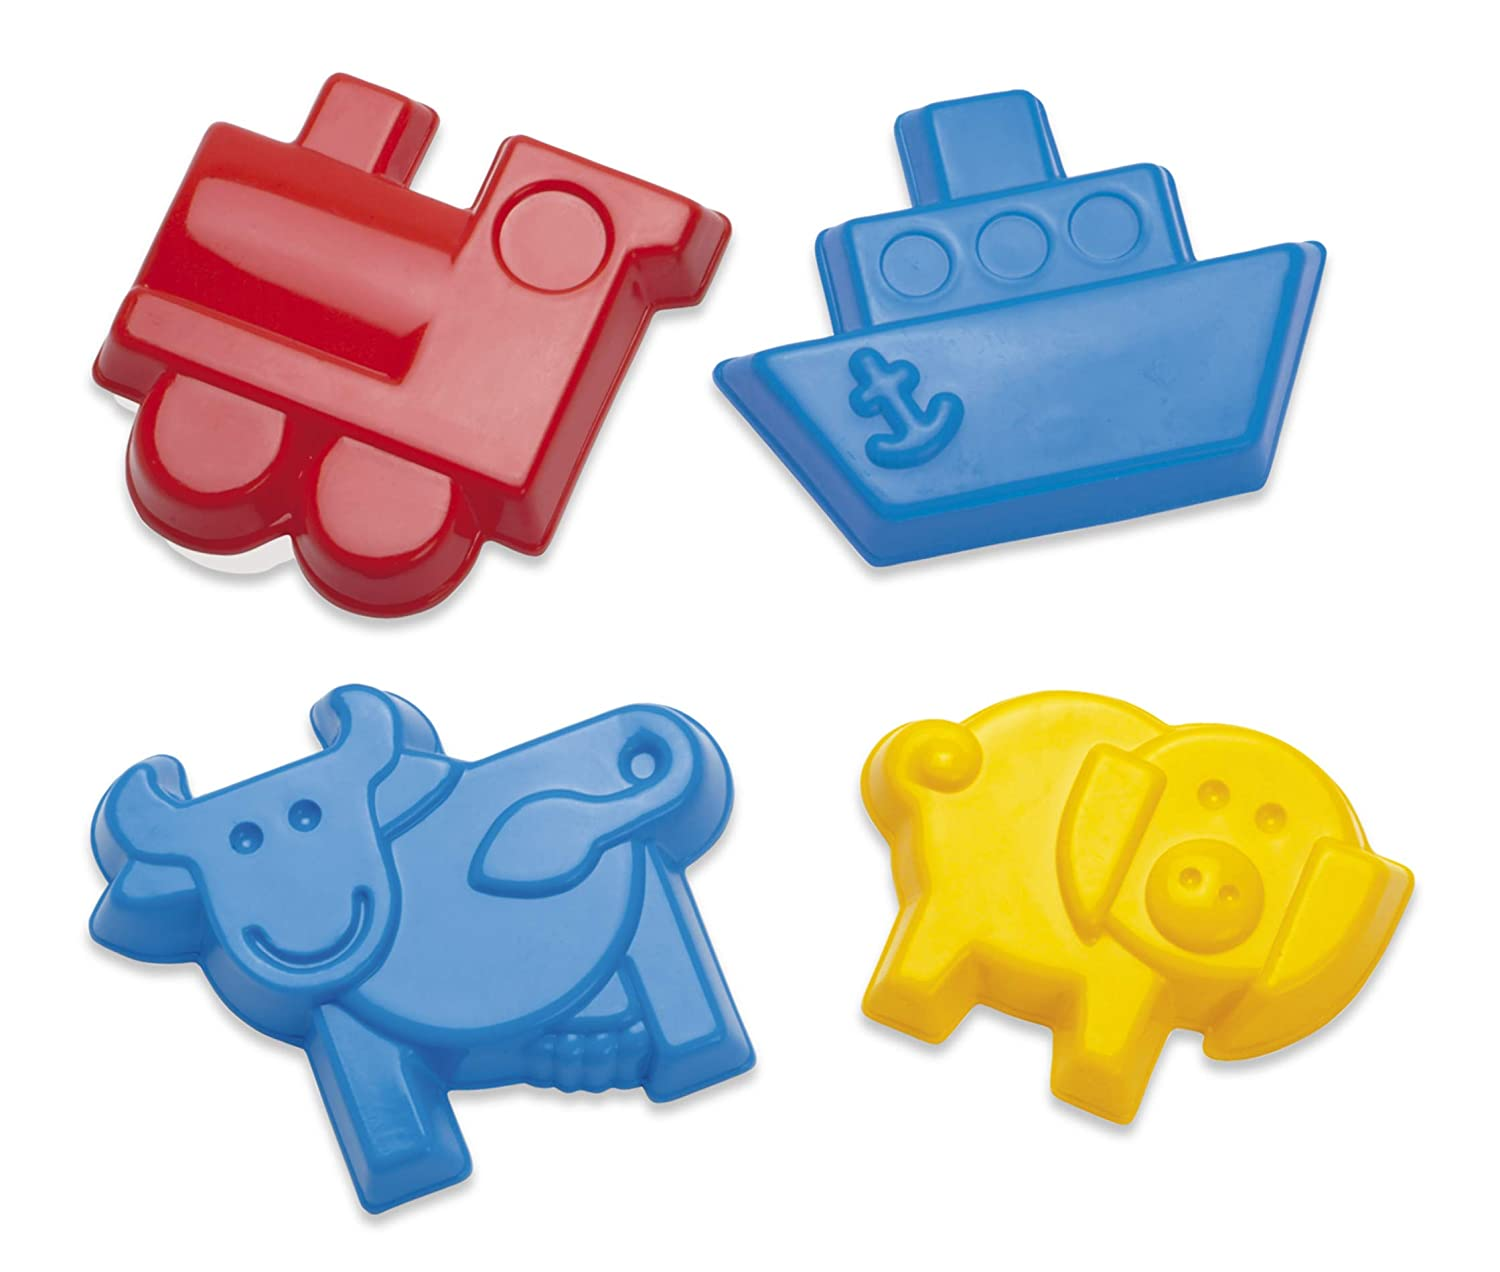 4.4853 Length 0.78 Height 3.7051 Wide 4.4853 Length Dantoy 0.78 Height American Educational Products DT-1245 Sand Molds-Variety Activity Set 3.7051 Wide